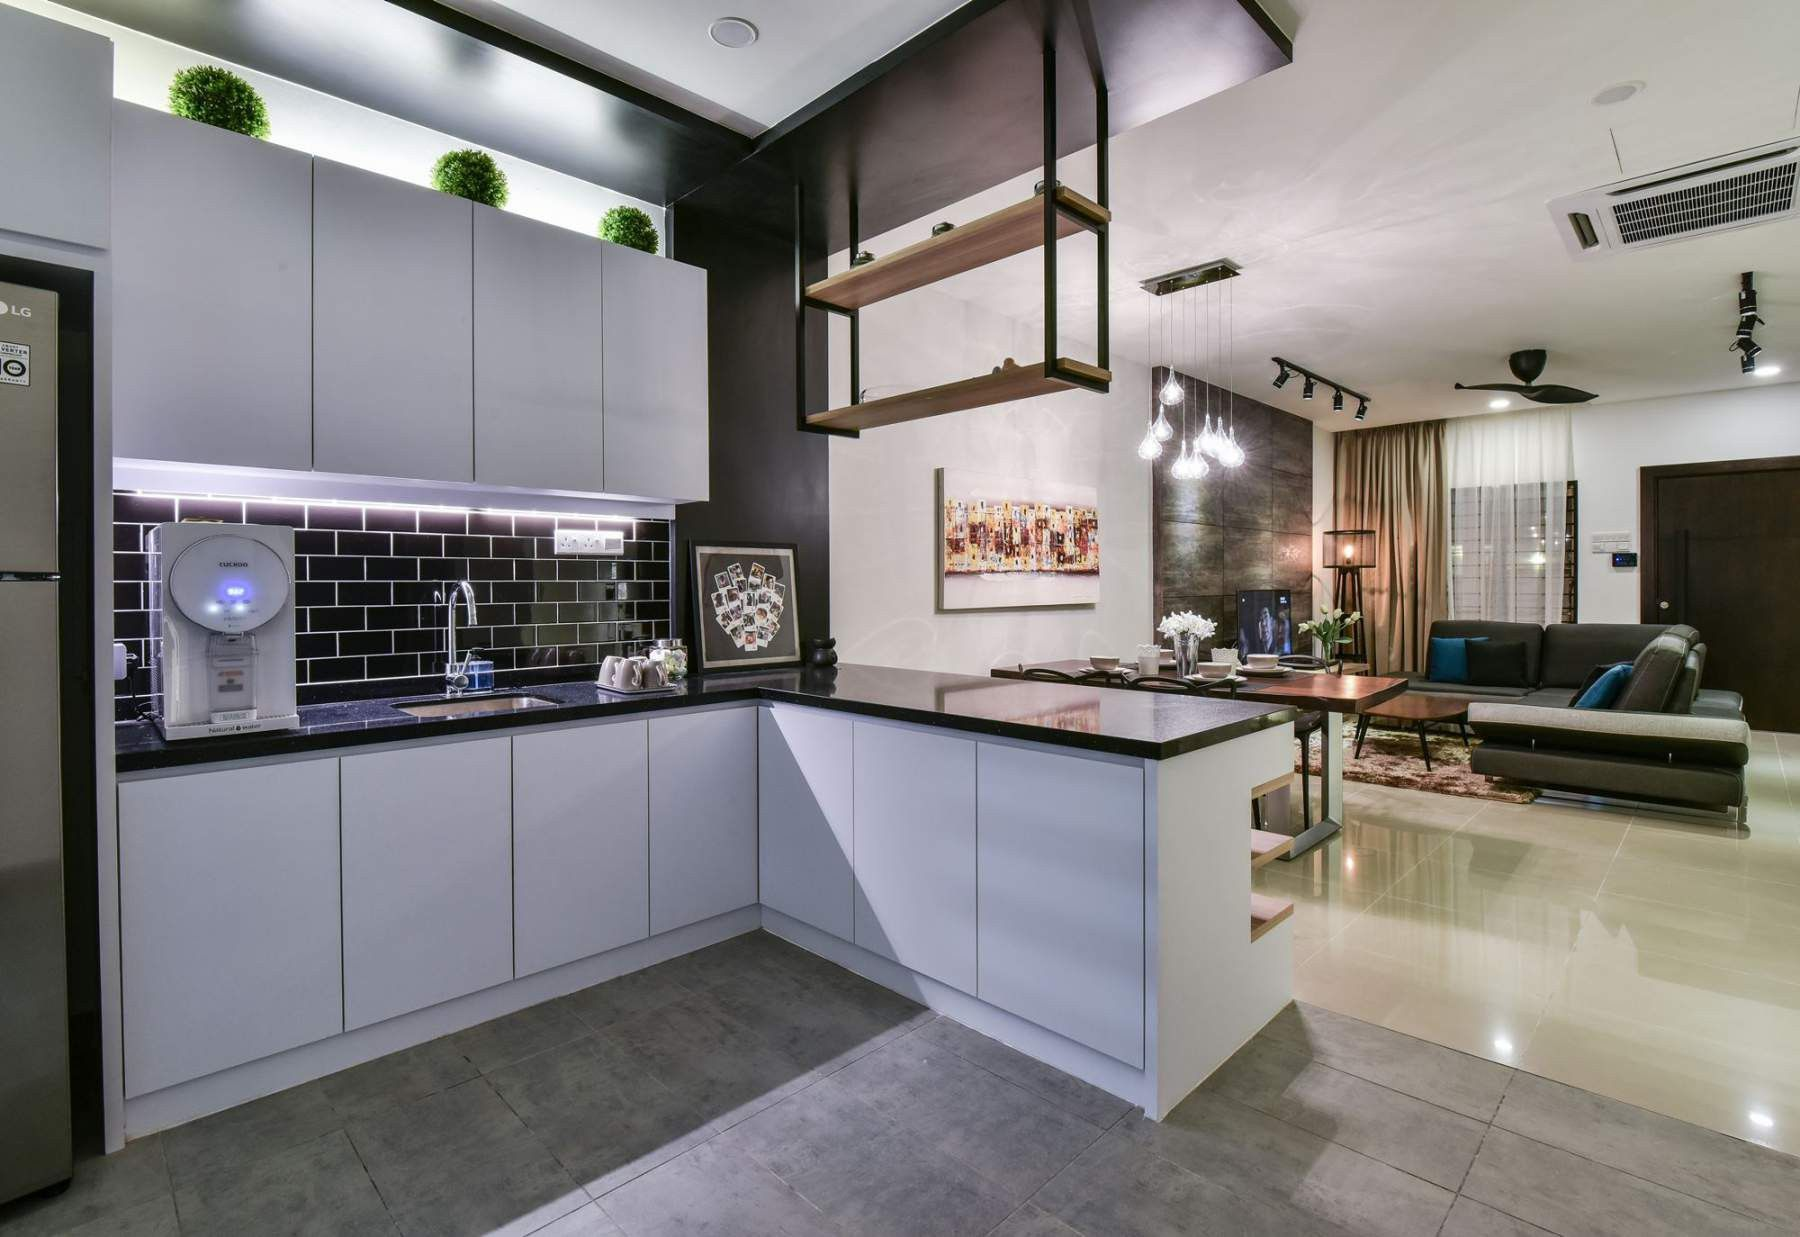 terrace house kitchen design ideas. MORE PHOTOS Contemporary twist for a Bandar Kinrara terrace house by Moonlit